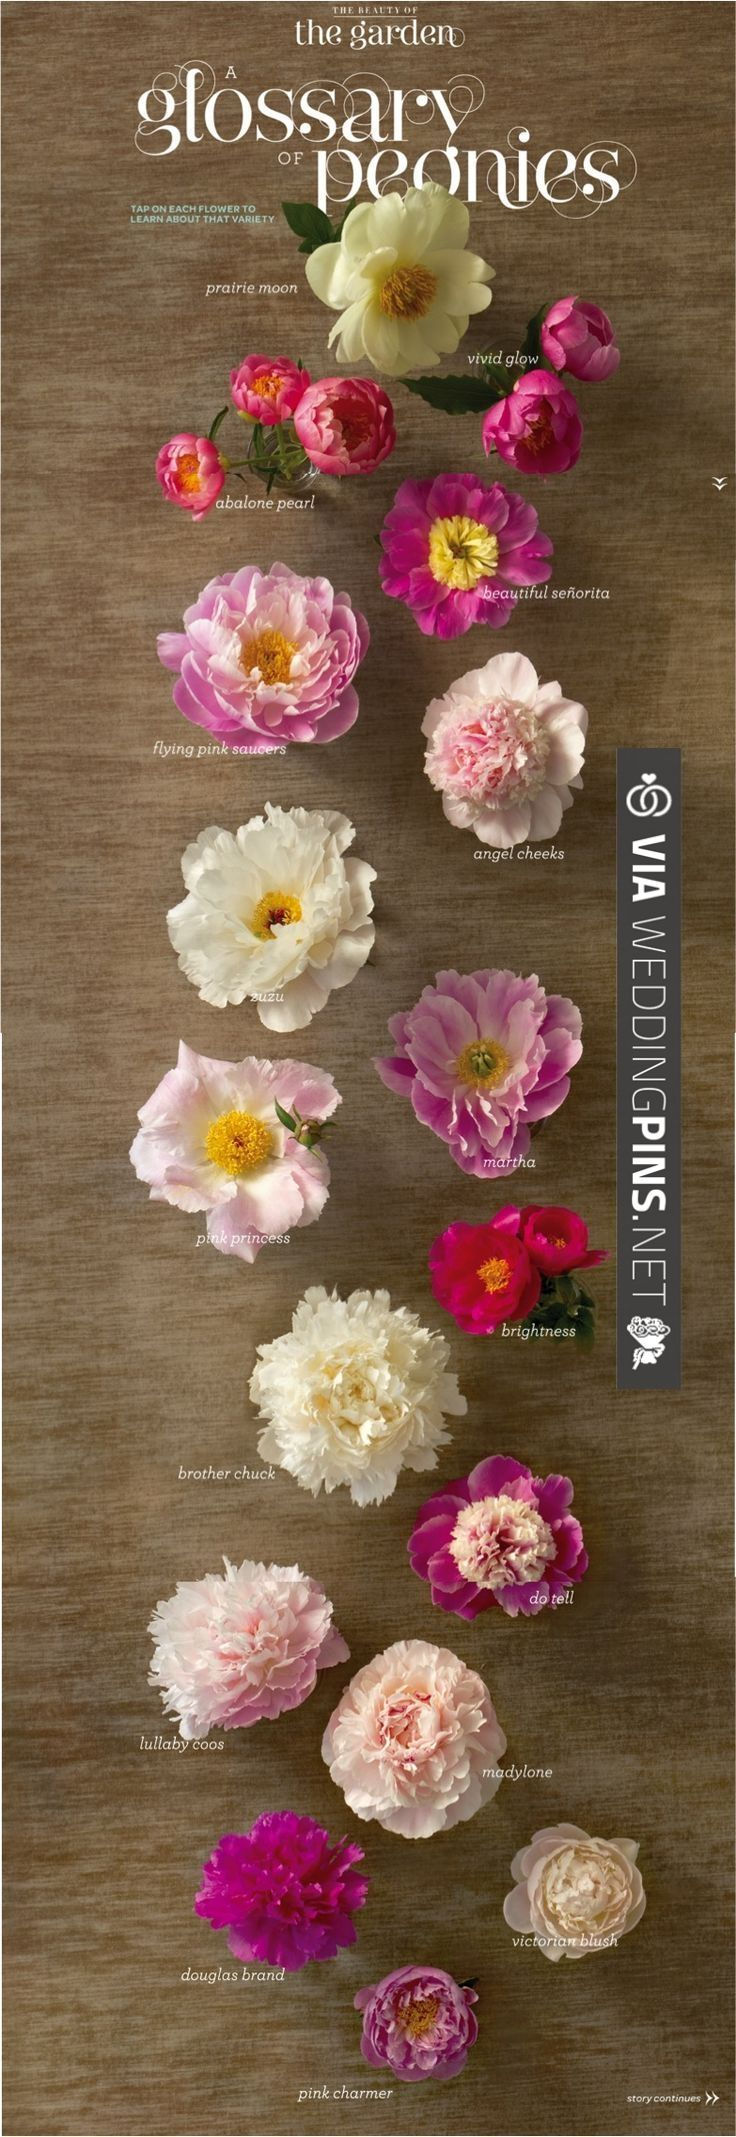 The definitive guide to peonies | I want them all